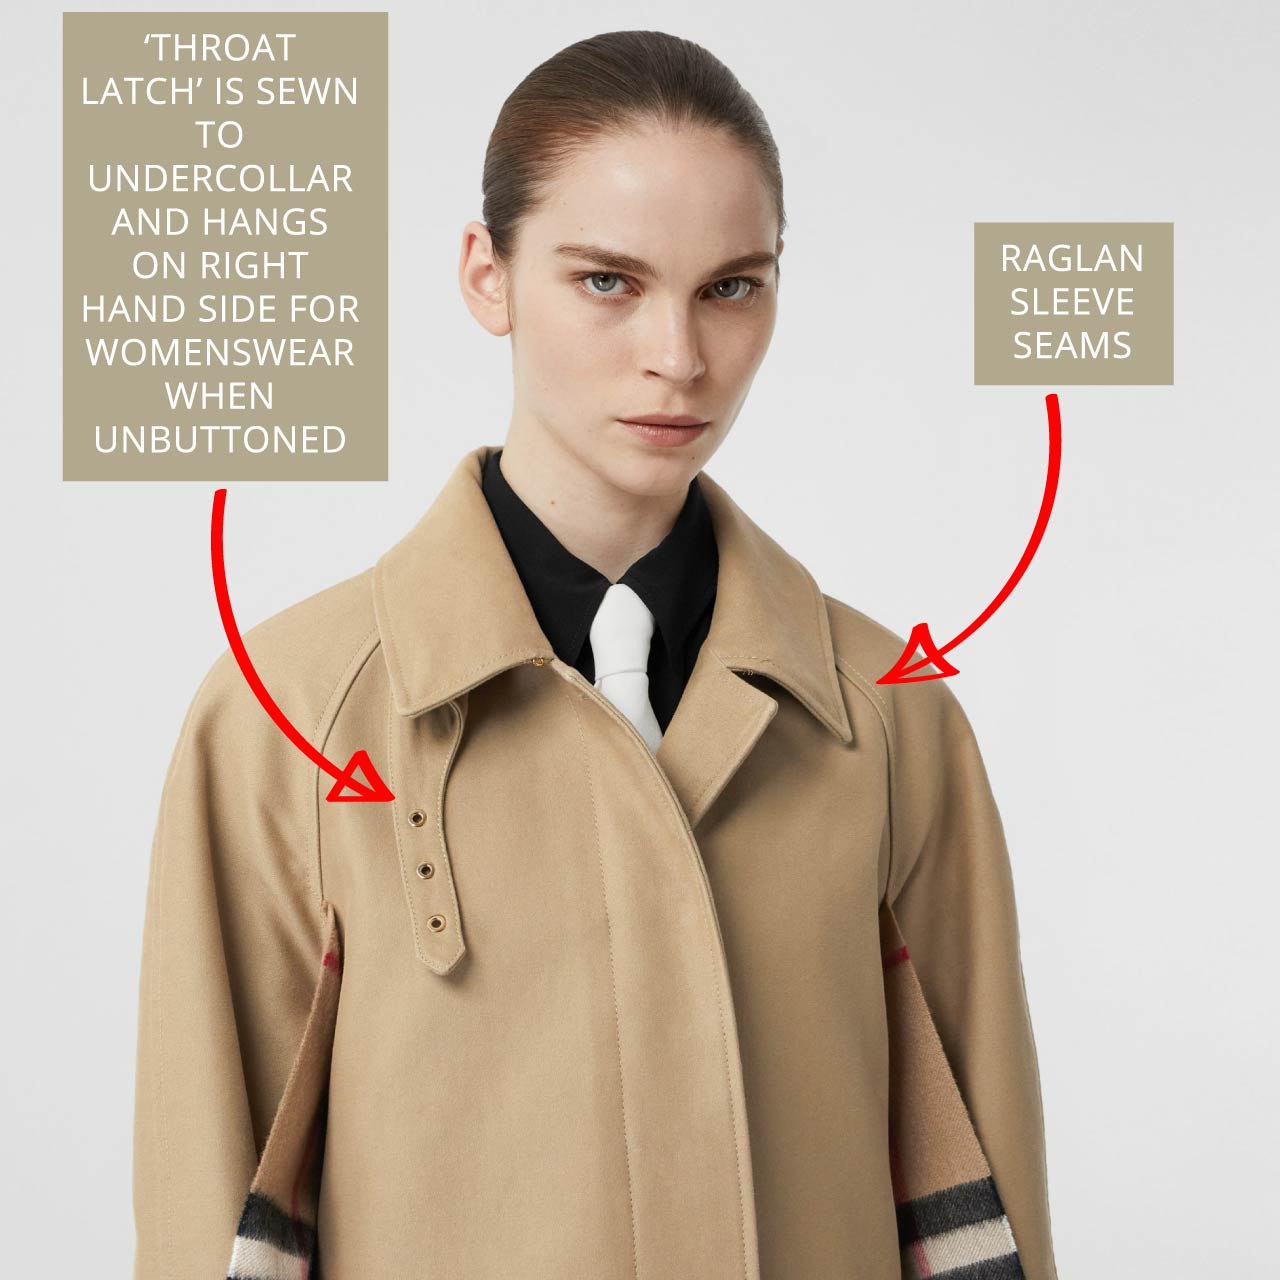 Burberry car coat with 'throat latch'. Throat latch is sewn to undercollar and hangs on the right hand side for womenswear when not in use.